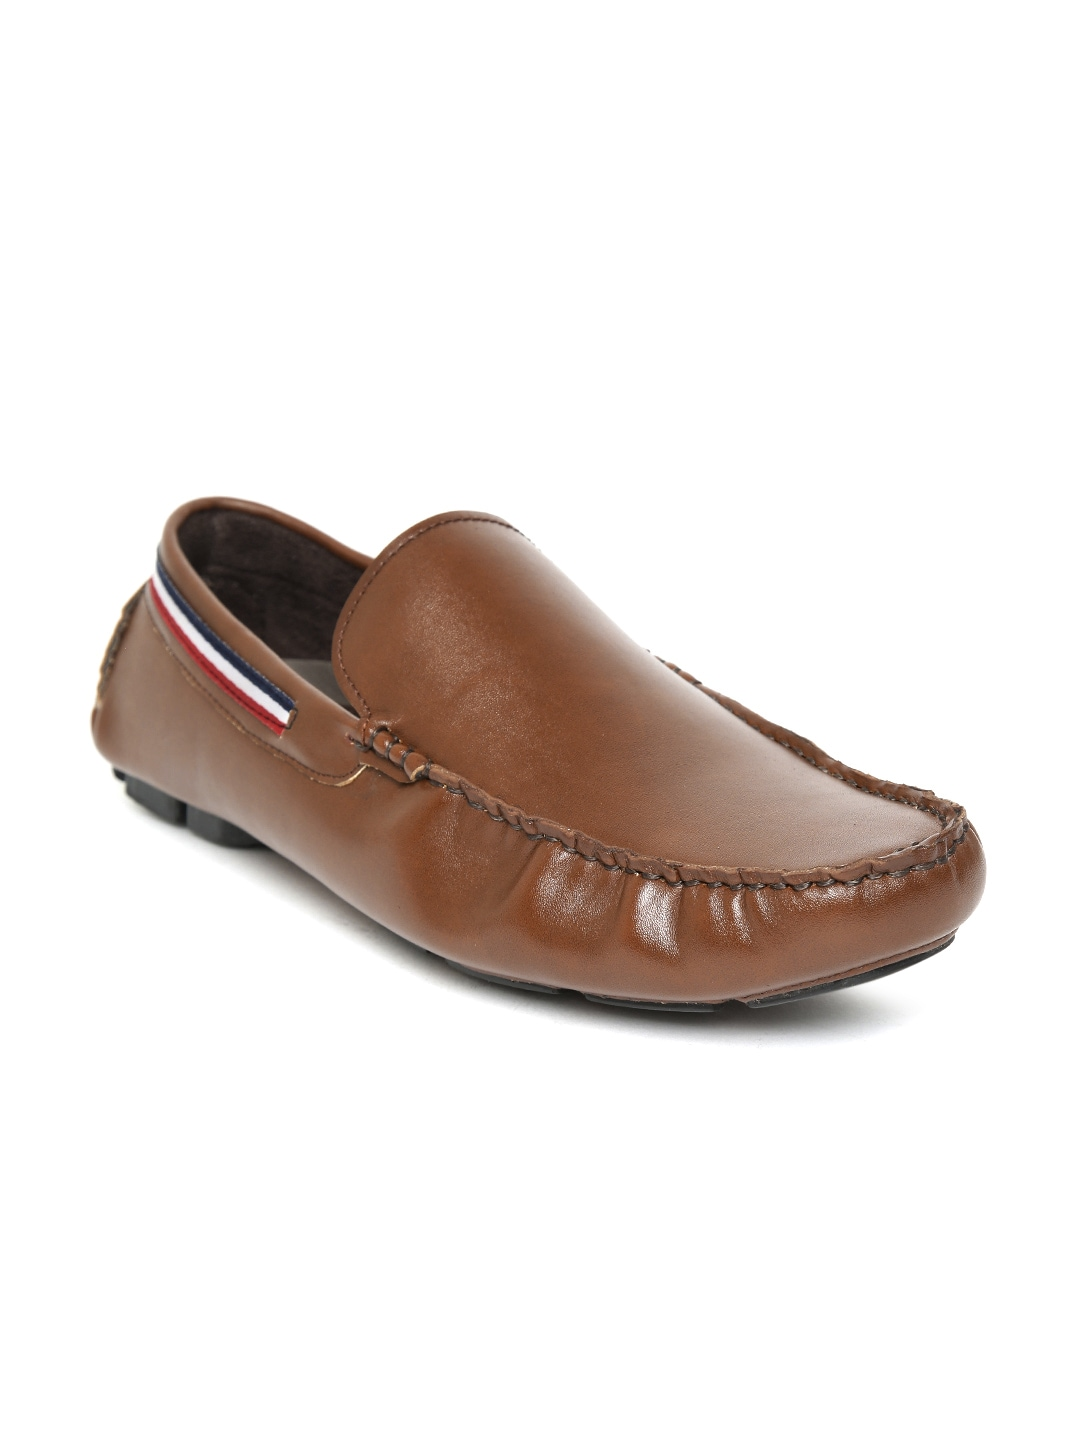 f387bcba6fd Shoes - Buy Shoes for Men